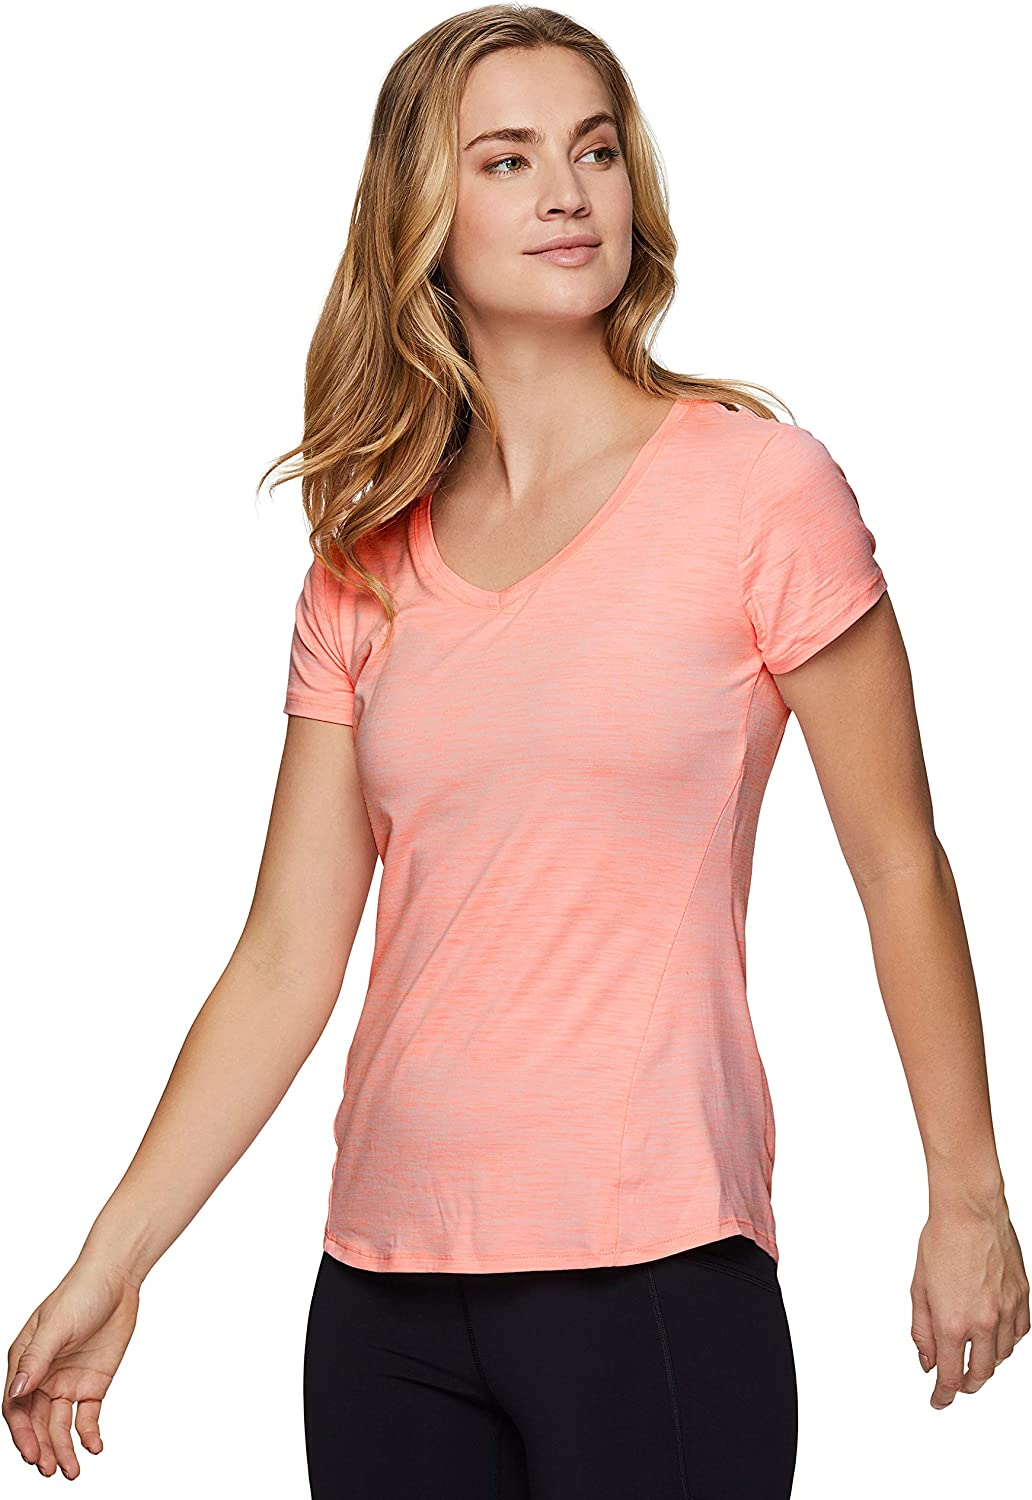 In stock RBX Active Women's Athletic Quick Lowest price challenge Dry Sleeve Space Dye Yog Short